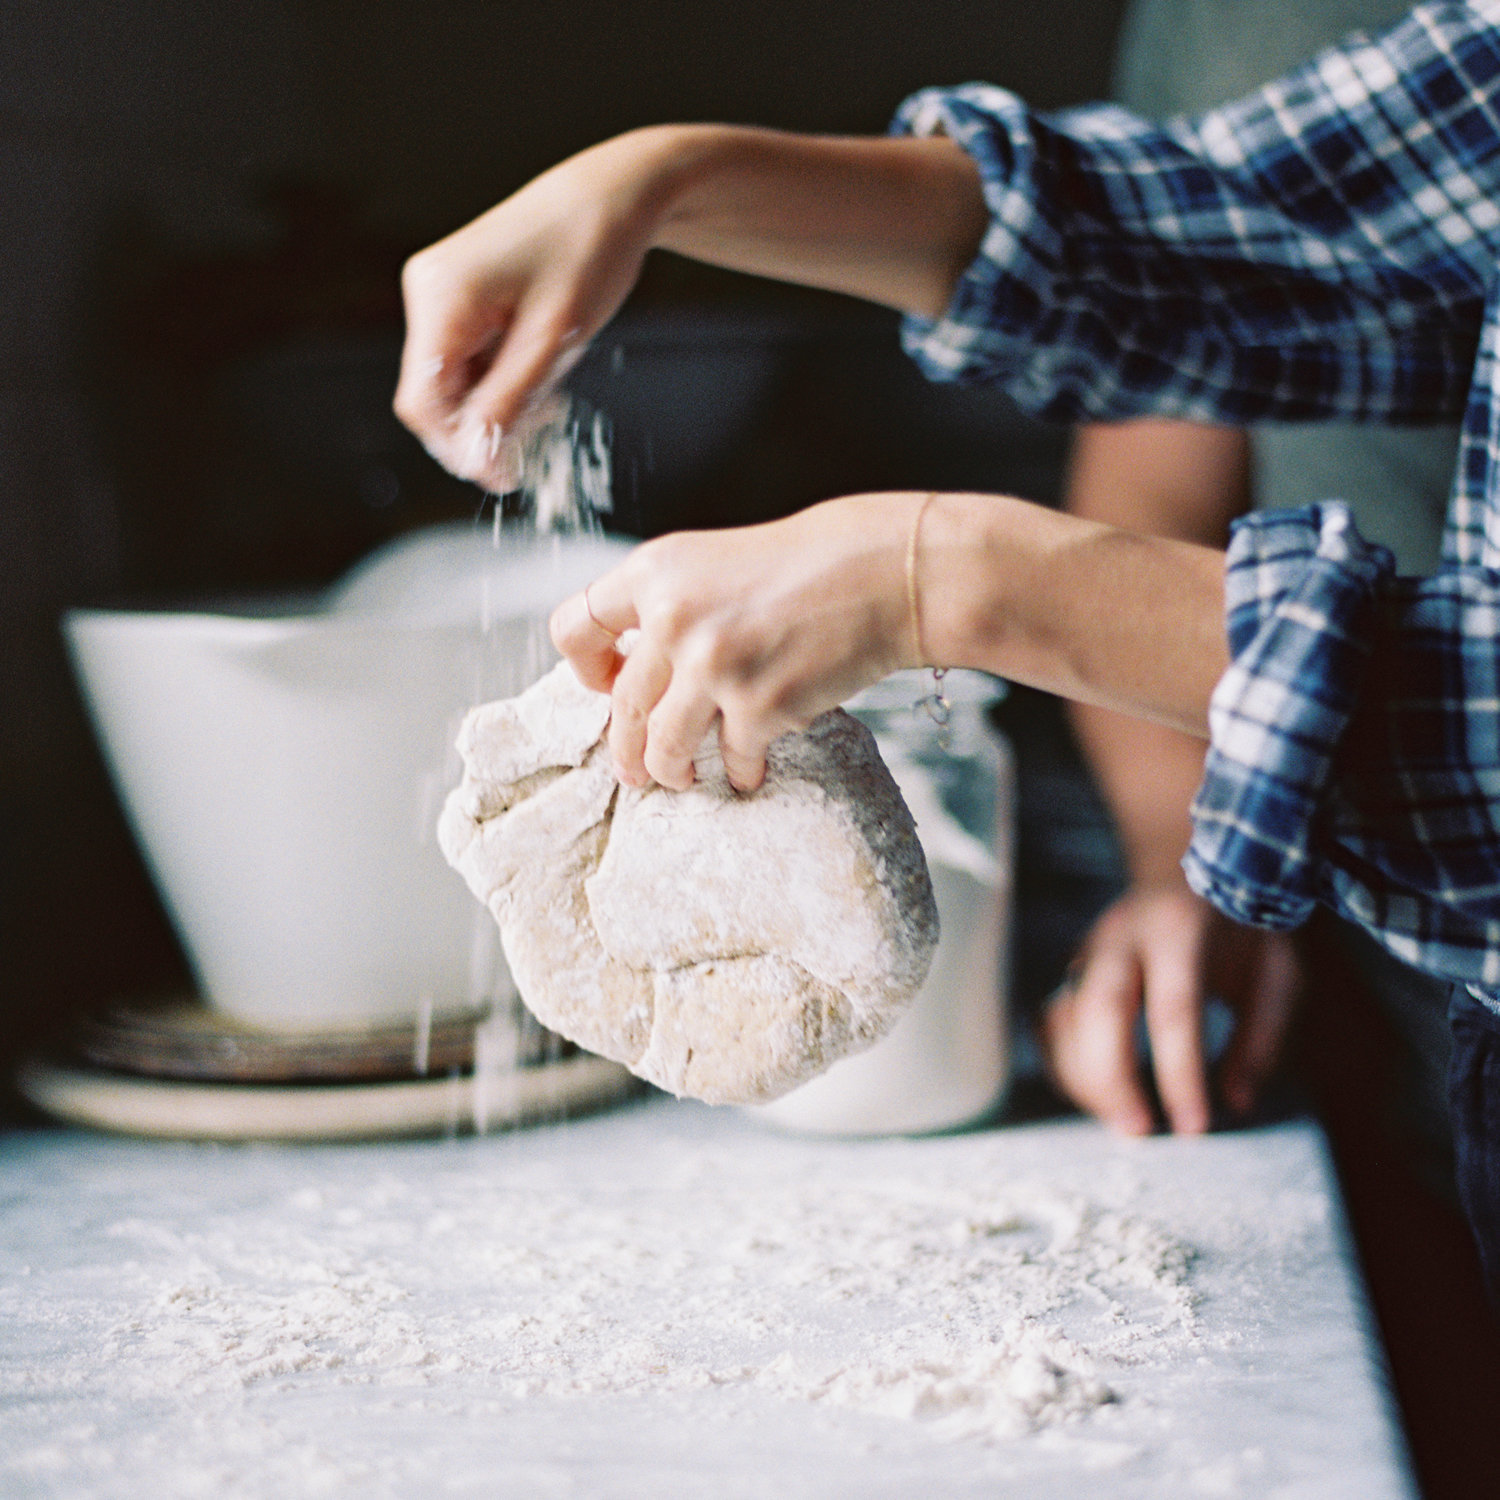 loom-curated-cooking-with-you-shoot-073